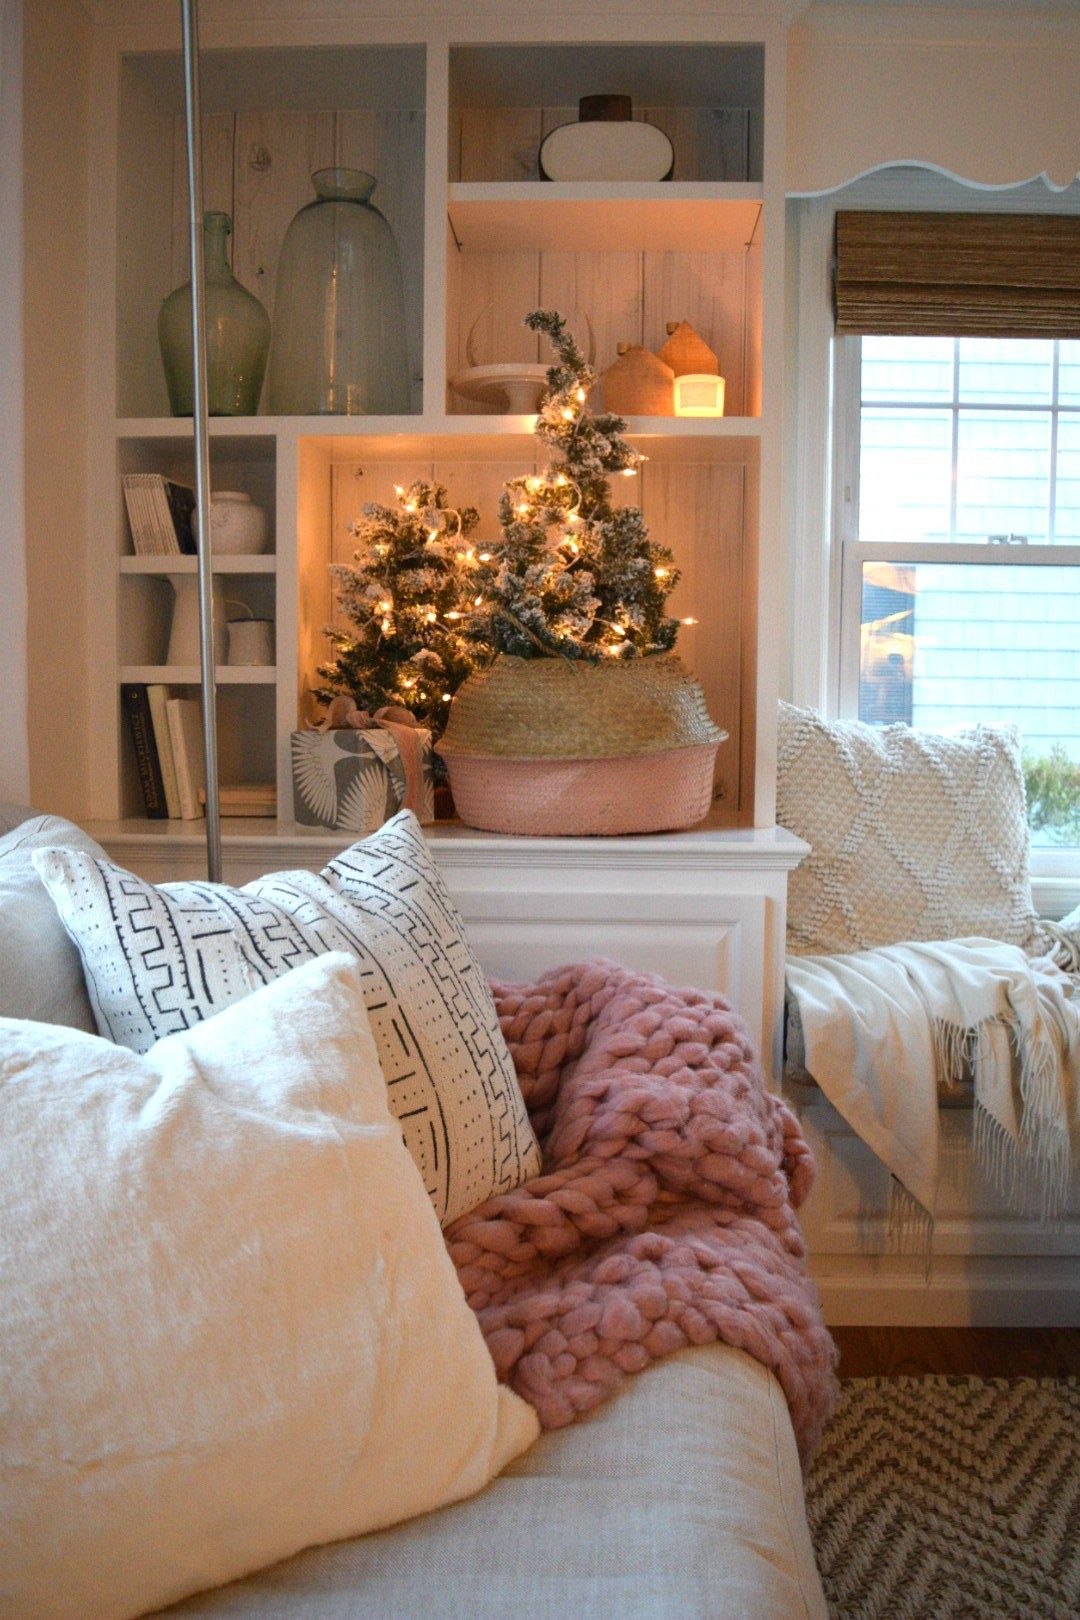 Home exterieur designtrends 2018 top home decor christmas trends   eclectic cottage farmhouse